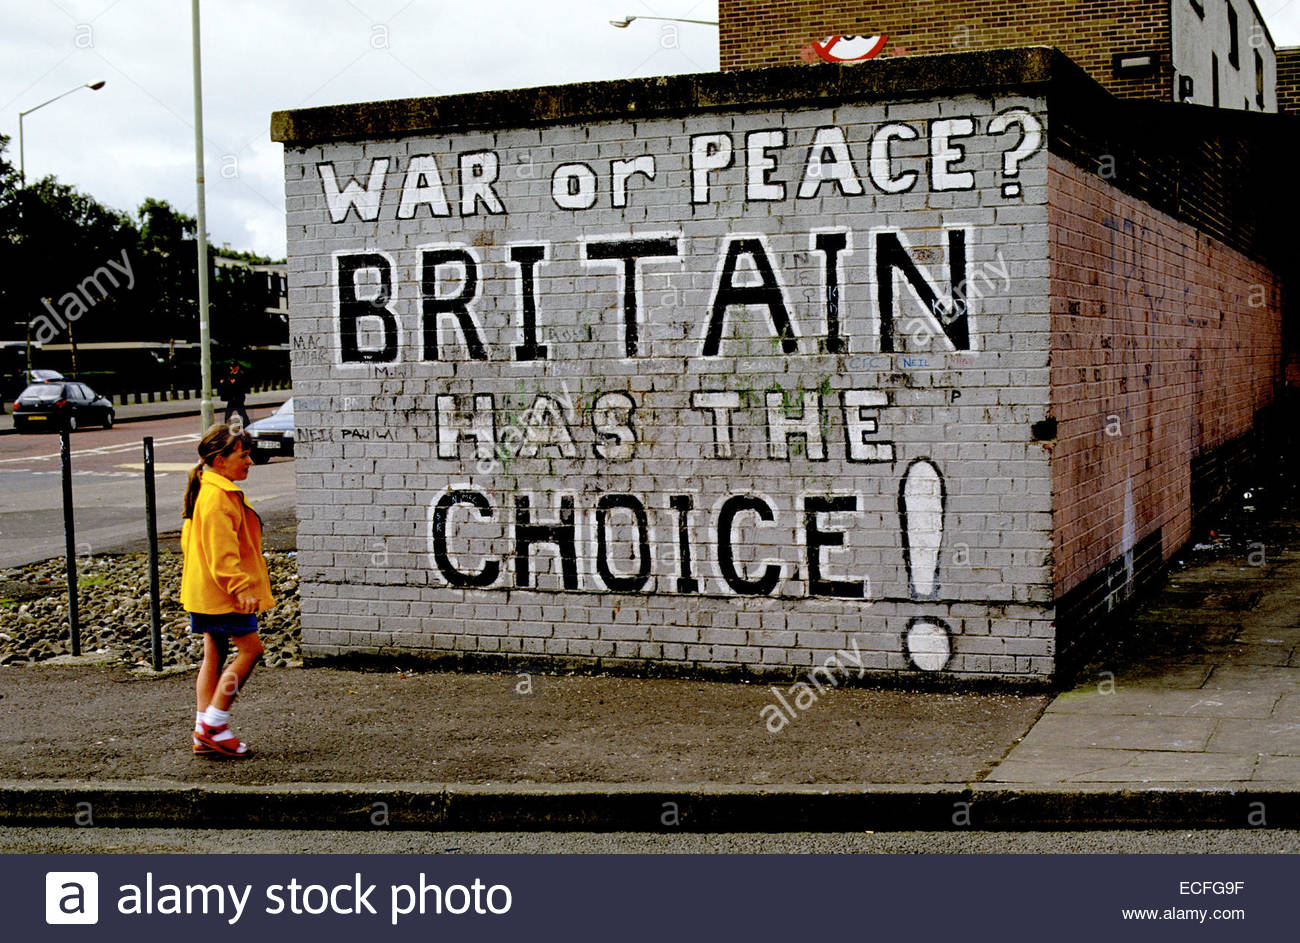 Northern Ireland, painting wall in Londonderry - Stock Image